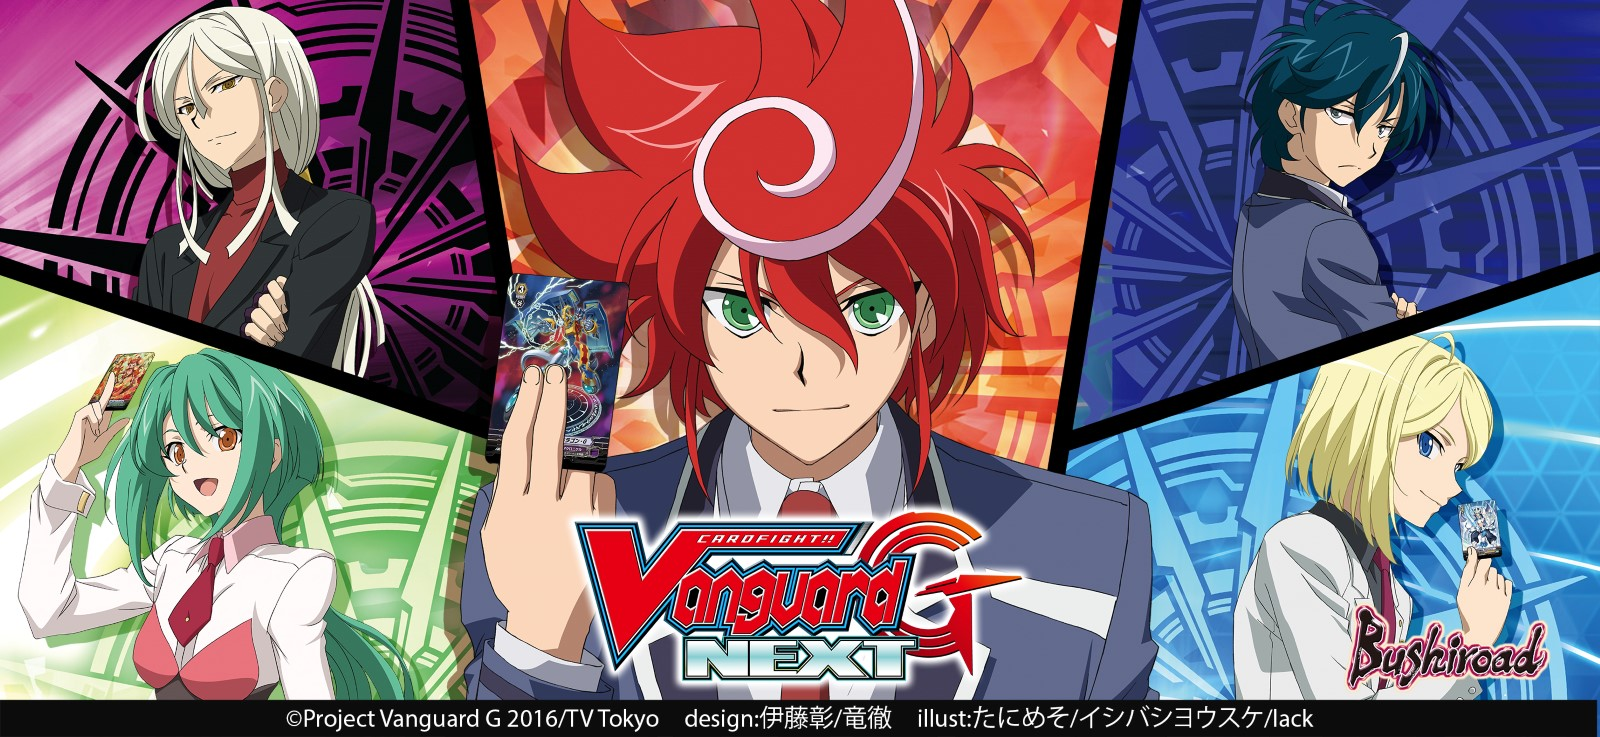 Cardfight Vanguard local